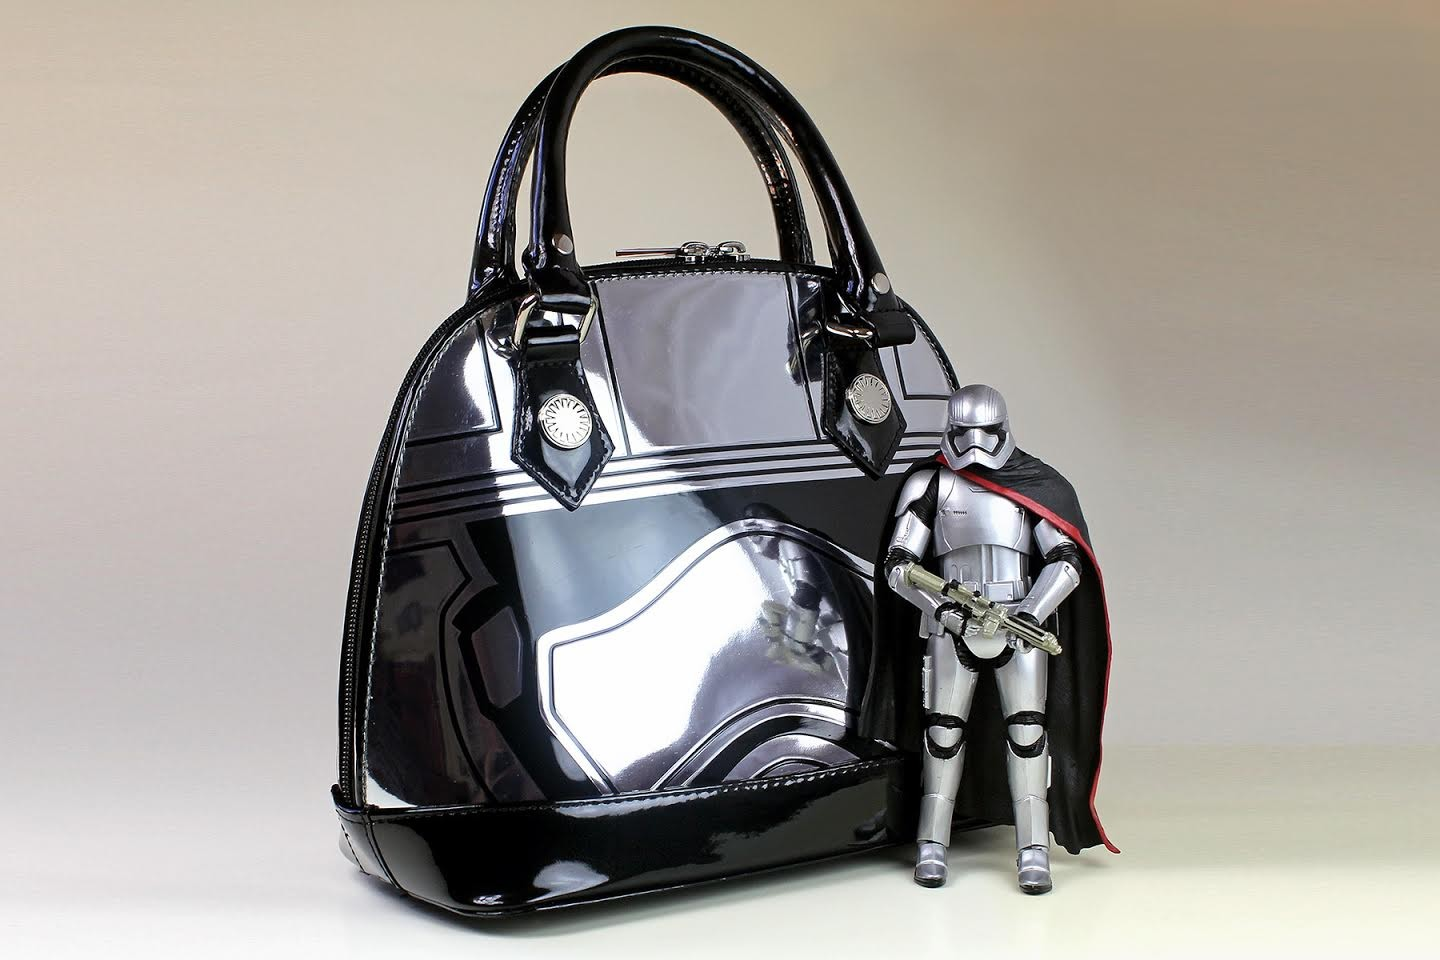 Review – Loungefly Phasma bag